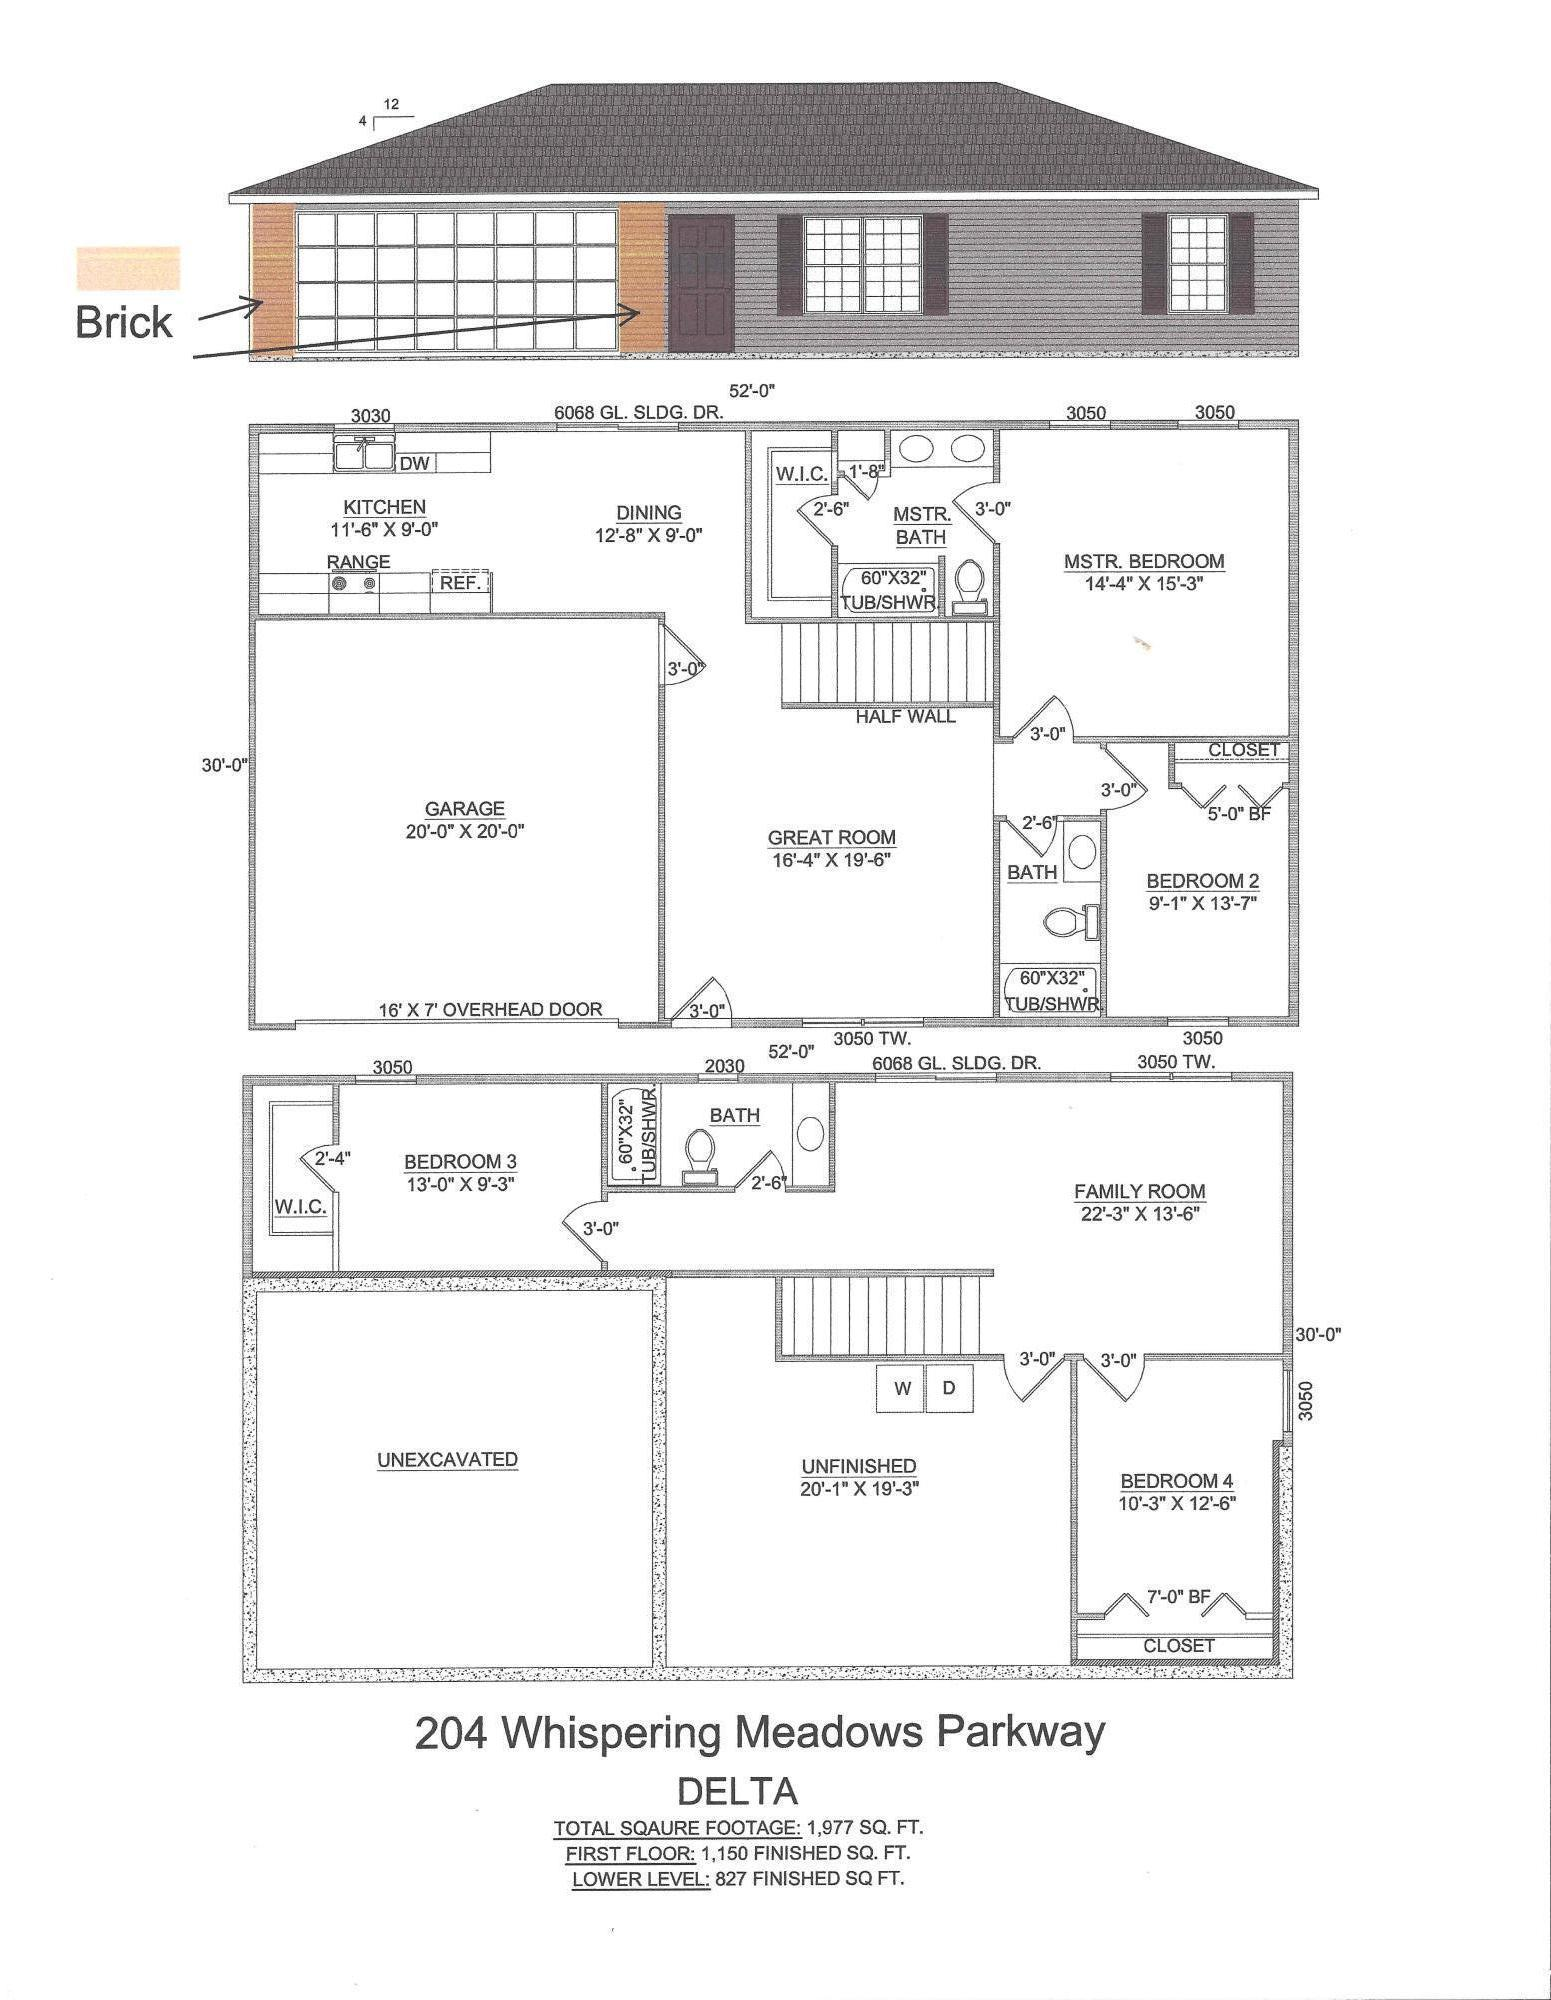 204 Whispering Meadows Parkway Branson, MO 65616